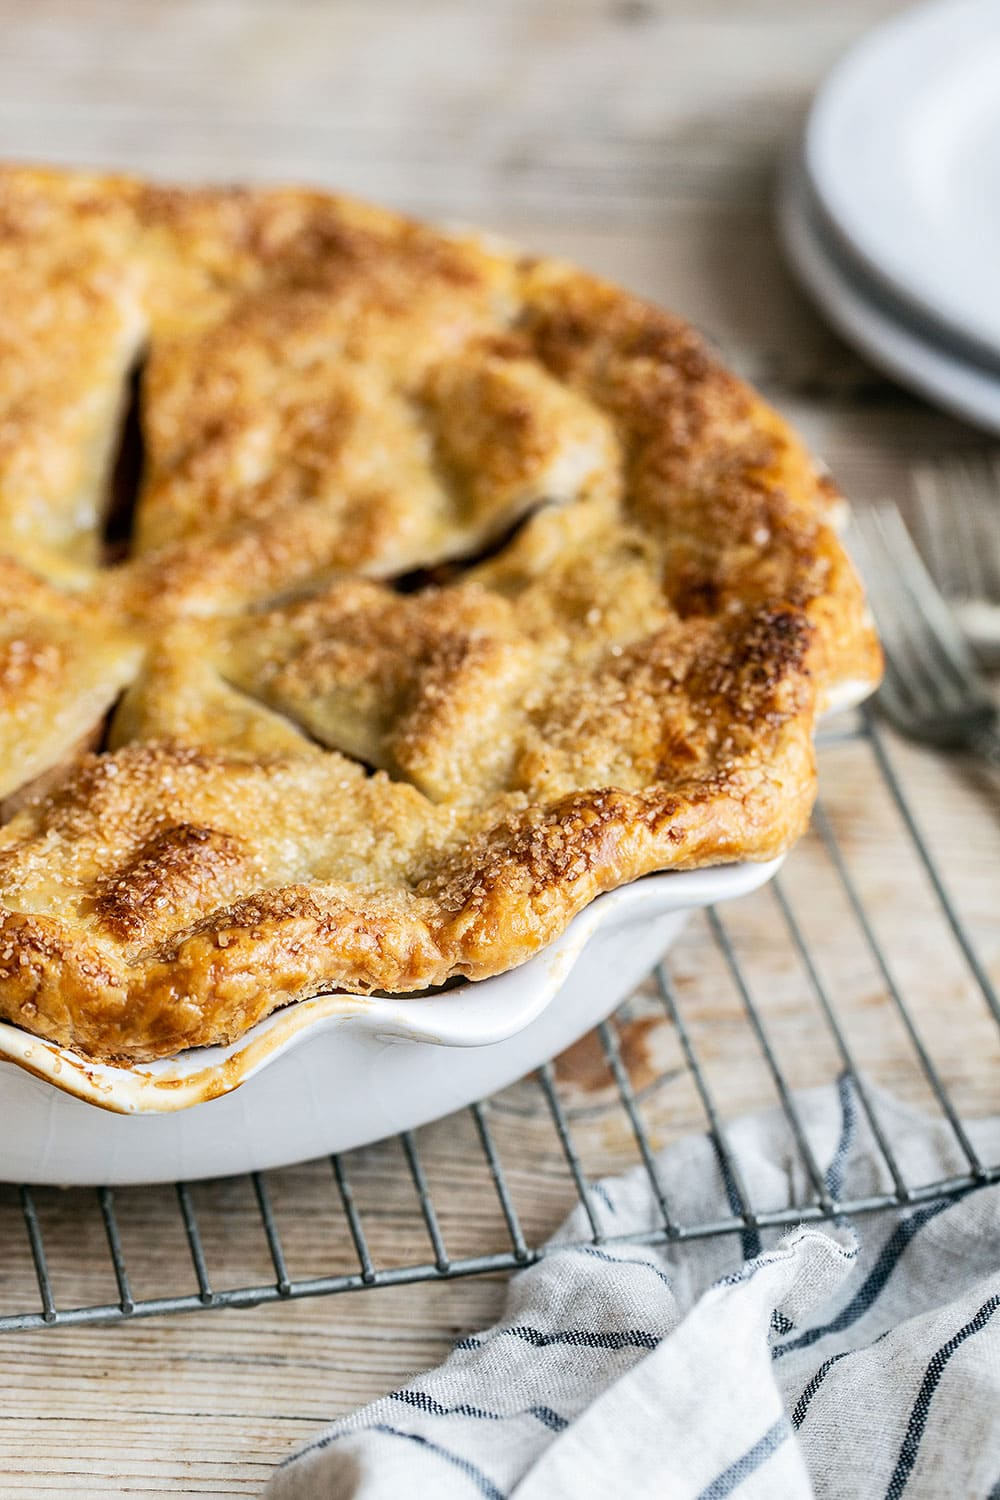 Double crust apple pie on a cooling rack on a wooden table